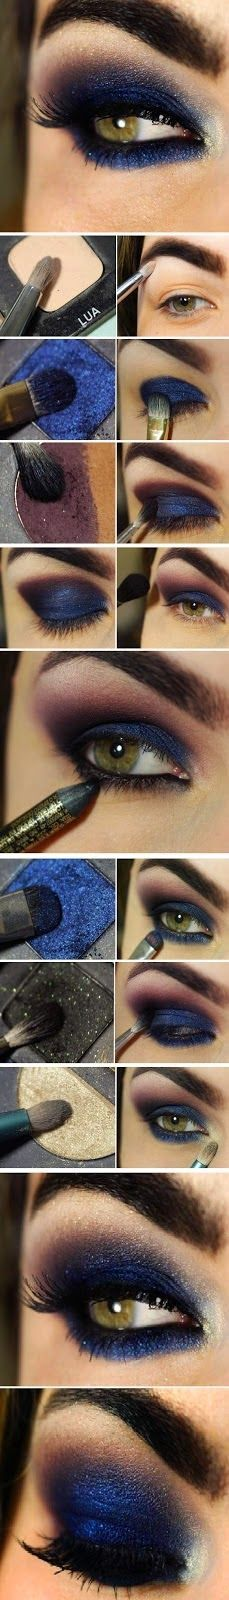 How to : Navy blue palette Makeup Tutorials - Step by Step More